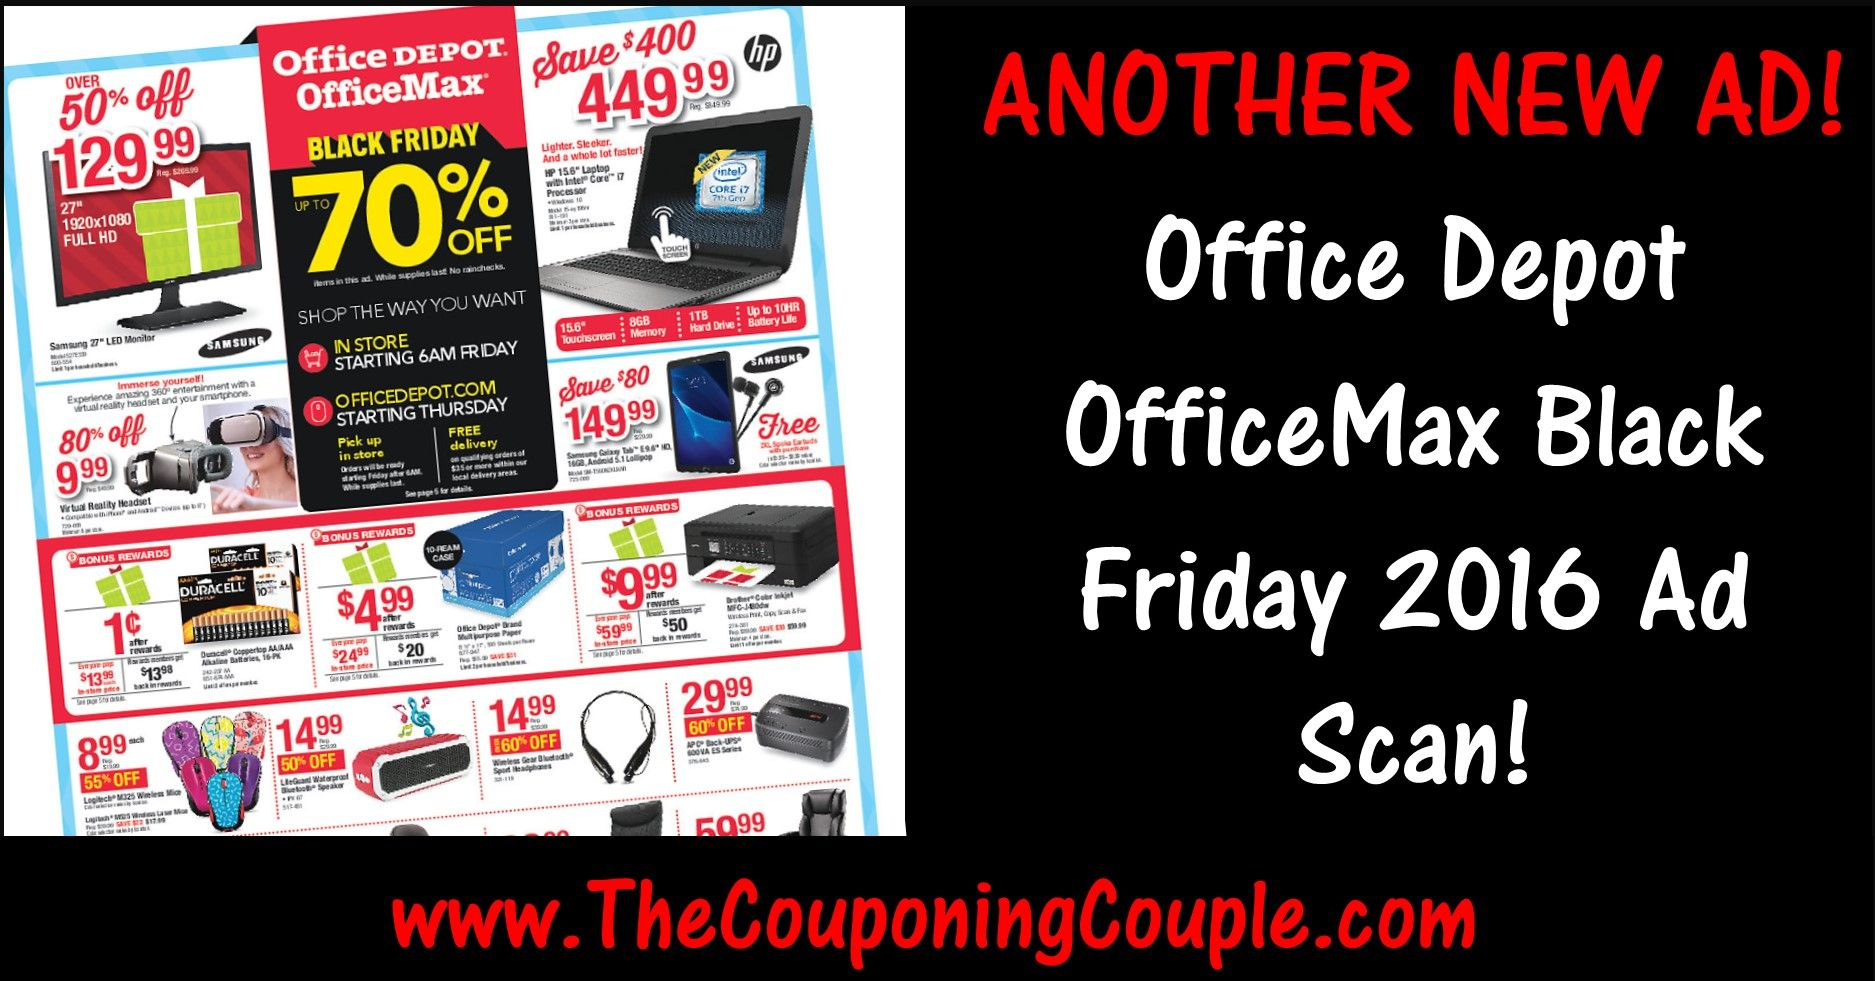 Office Depot OfficeMax Black Friday 2019 Ad Posted